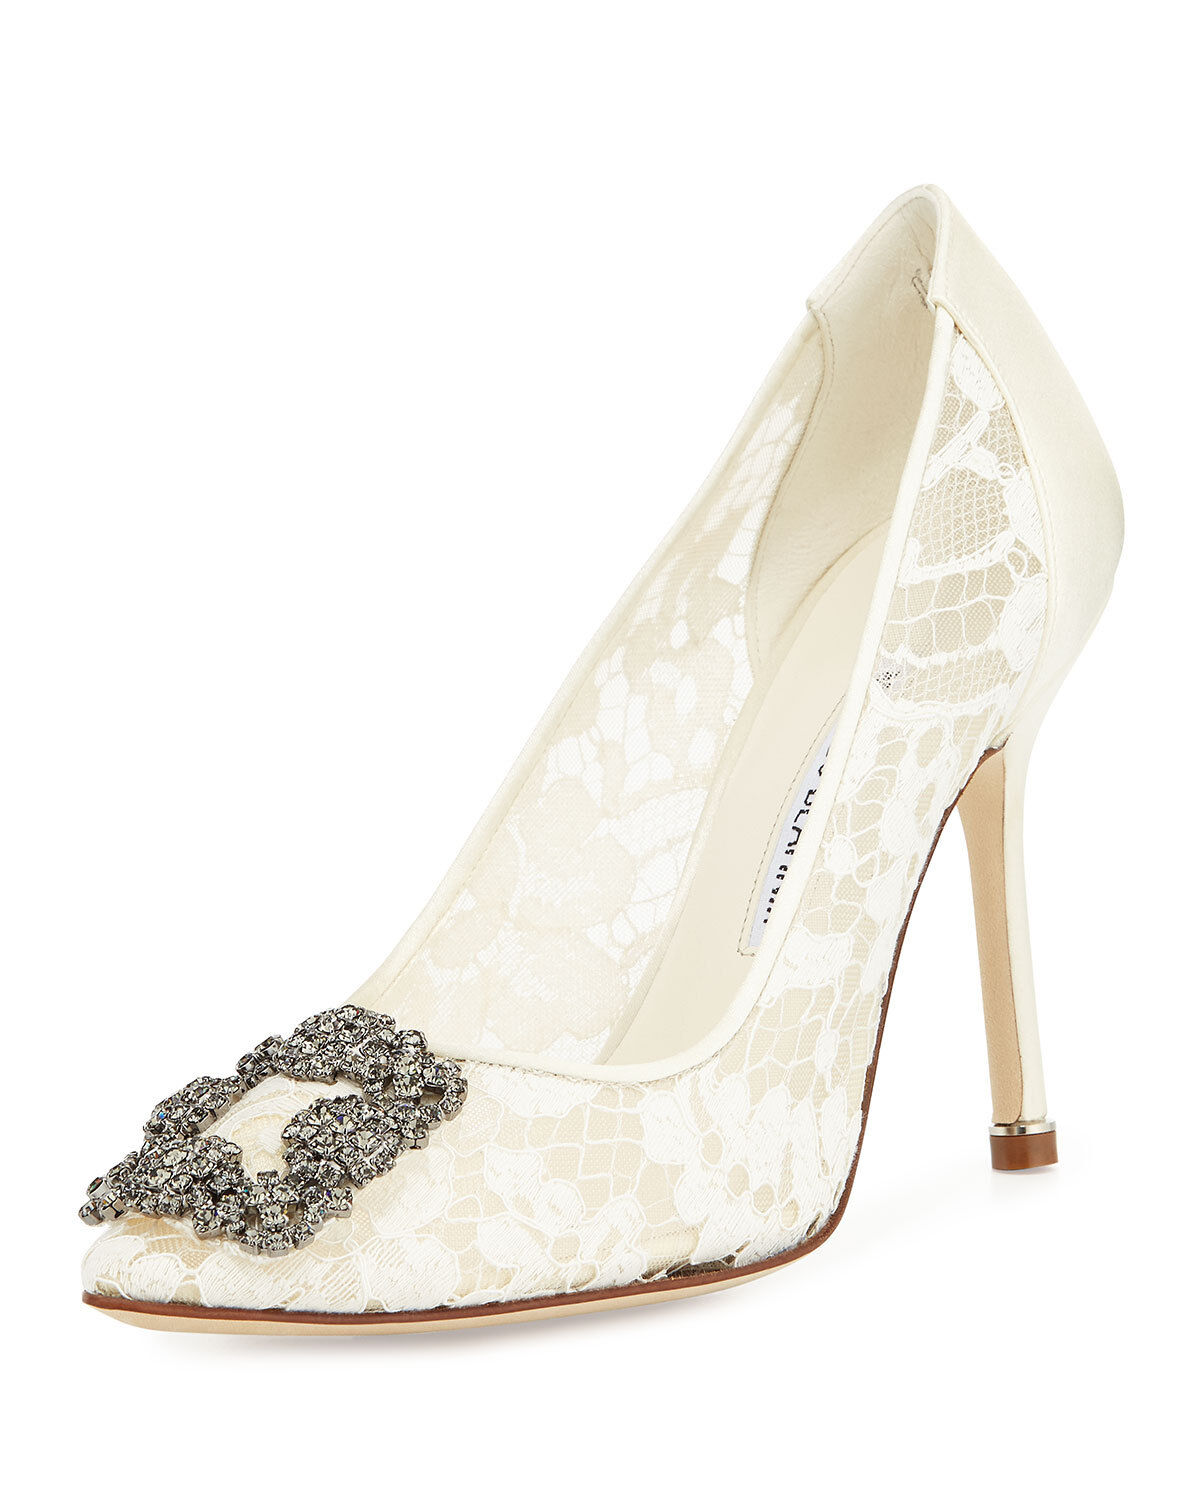 1035 NEW MANOLO BLAHNIK HANGISI 105 Lace Crystal Pump Wedding shoes Ivory 40.5